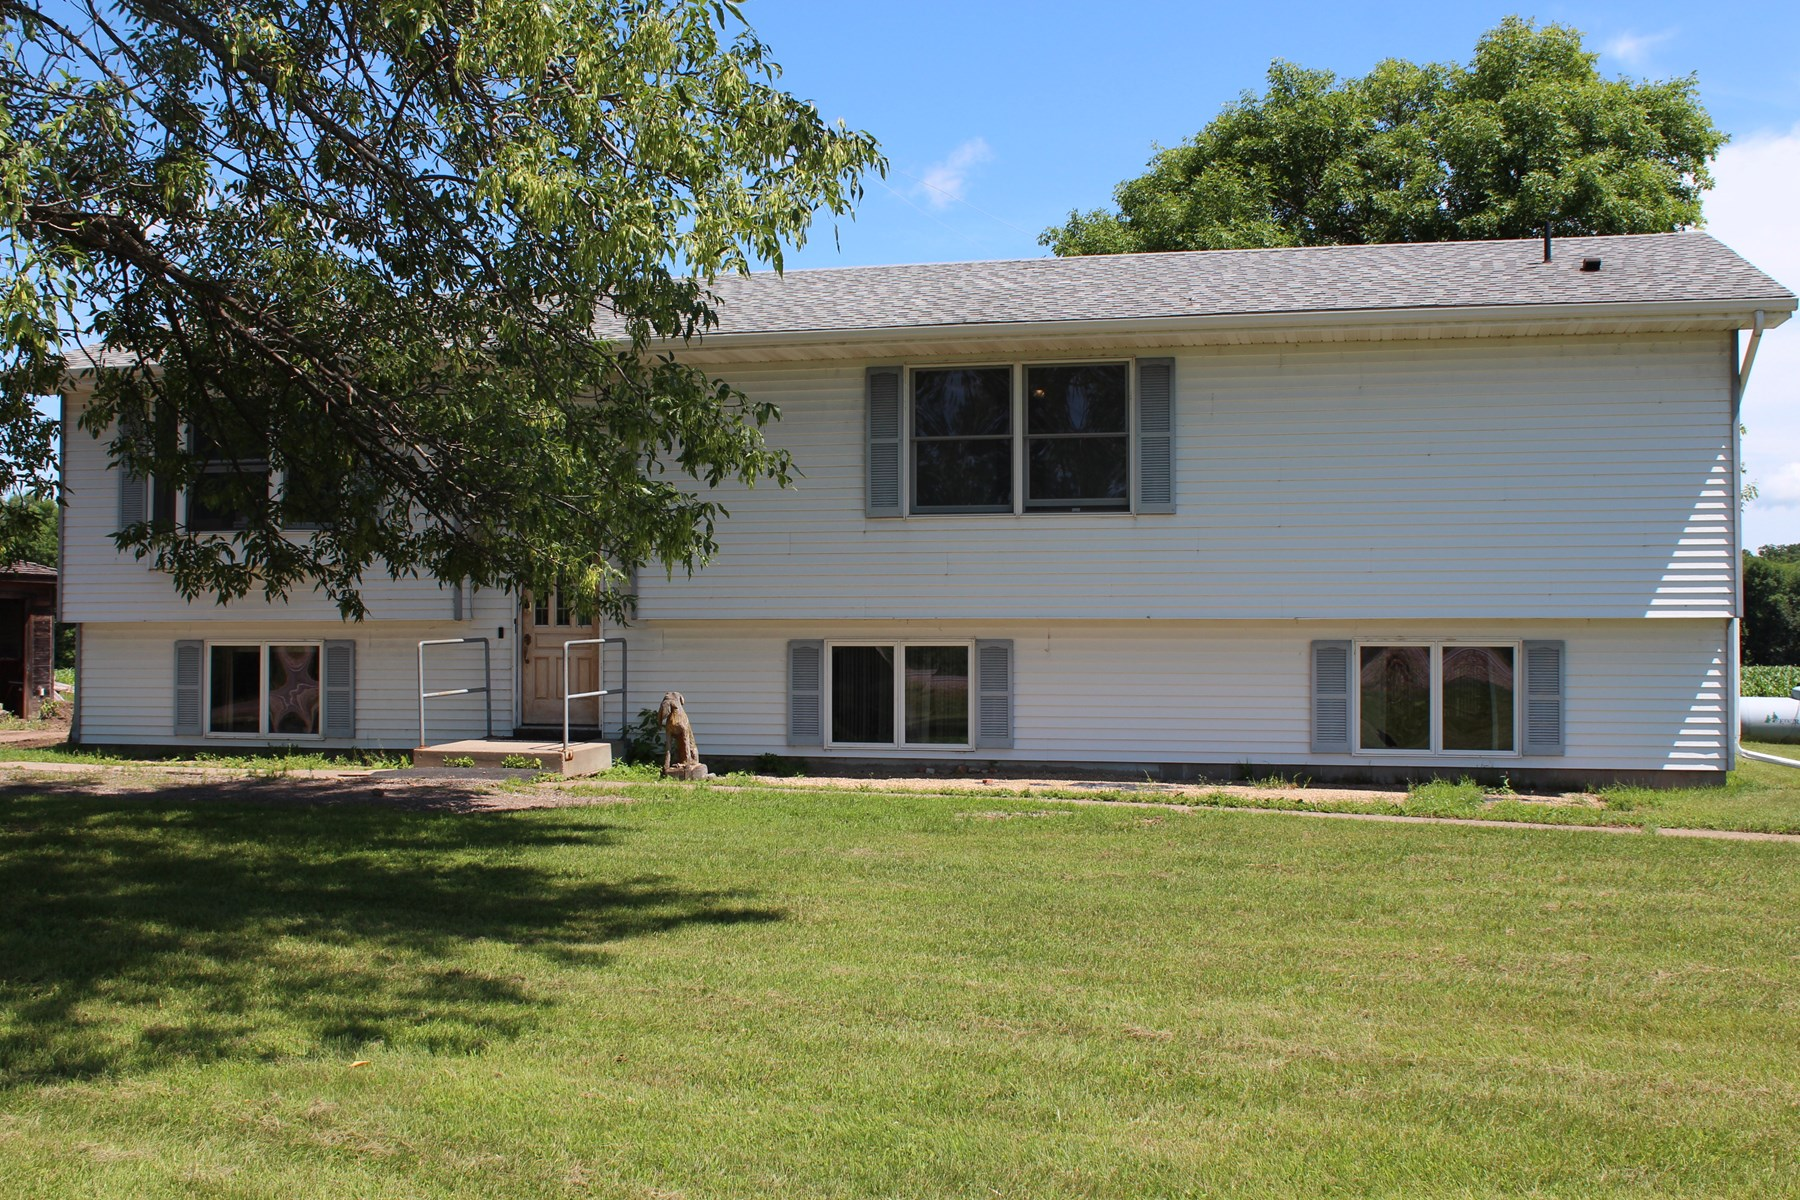 3BR/3BA Mille Lacs County Country Home For Sale